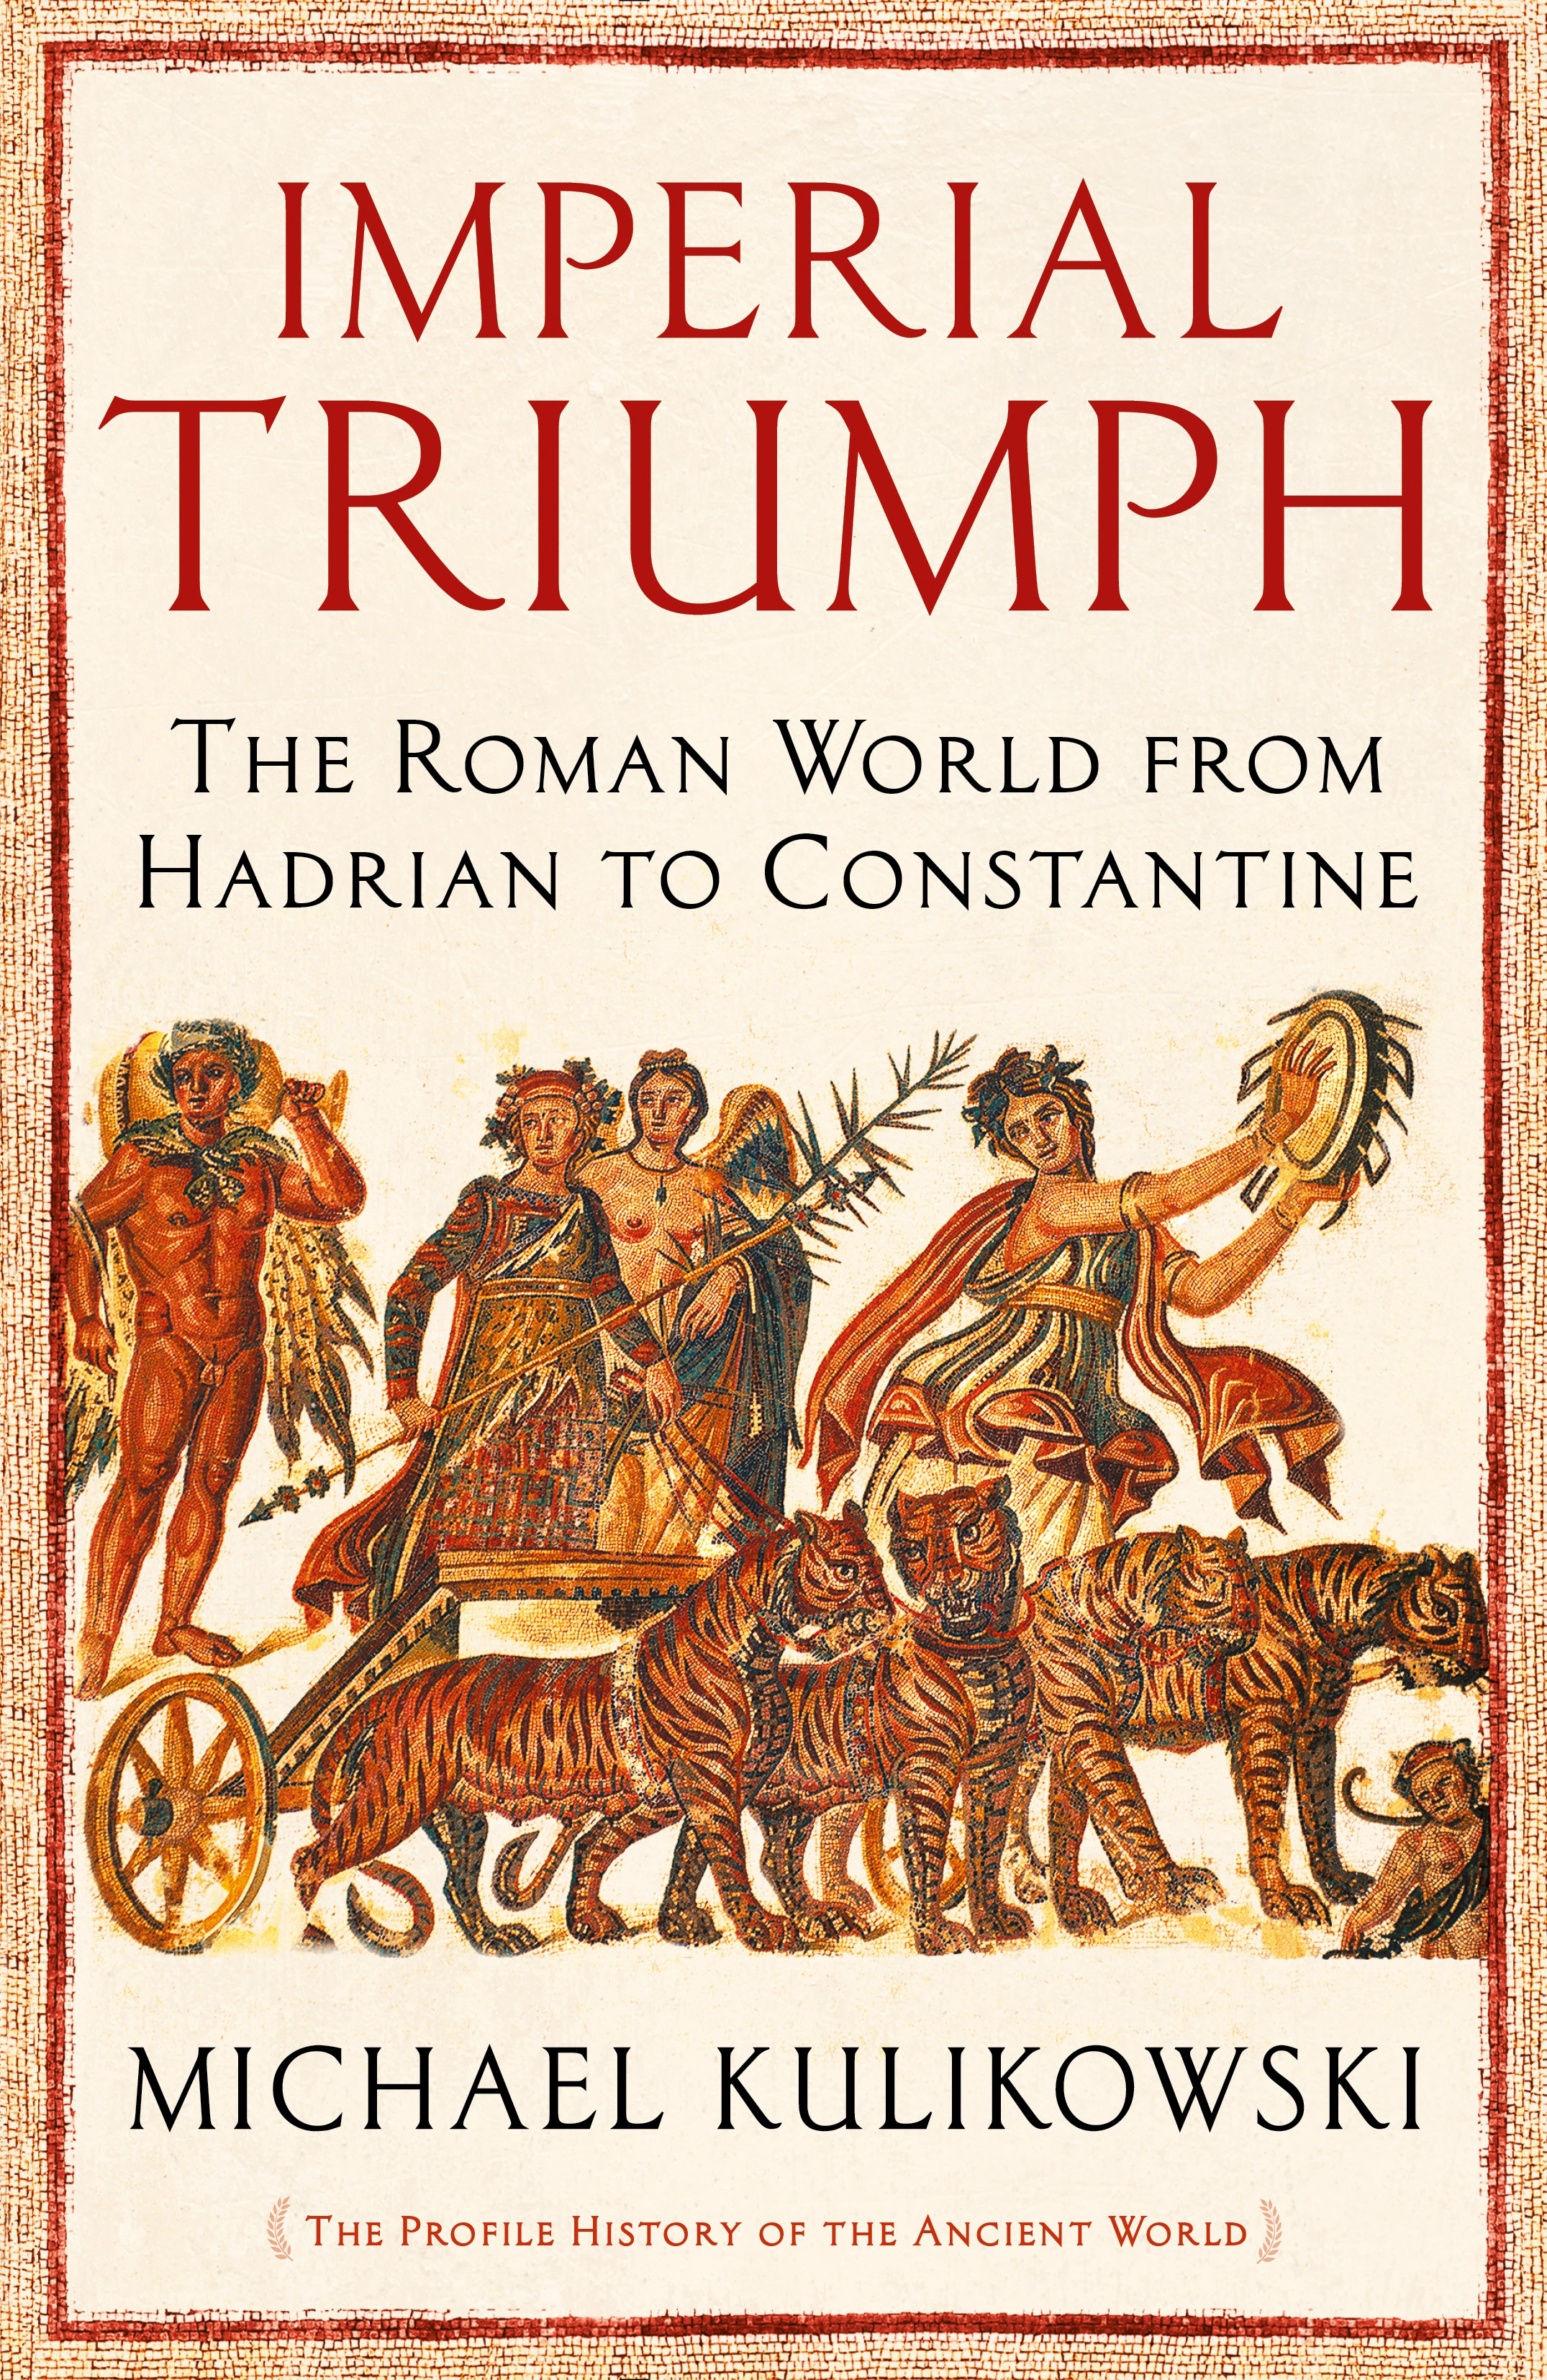 a history of hadrian the emperor of rome Find out more about the history of hadrian's wall by the time emperor hadrian came to power in 117 ad hadrian's successor as roman head of state.